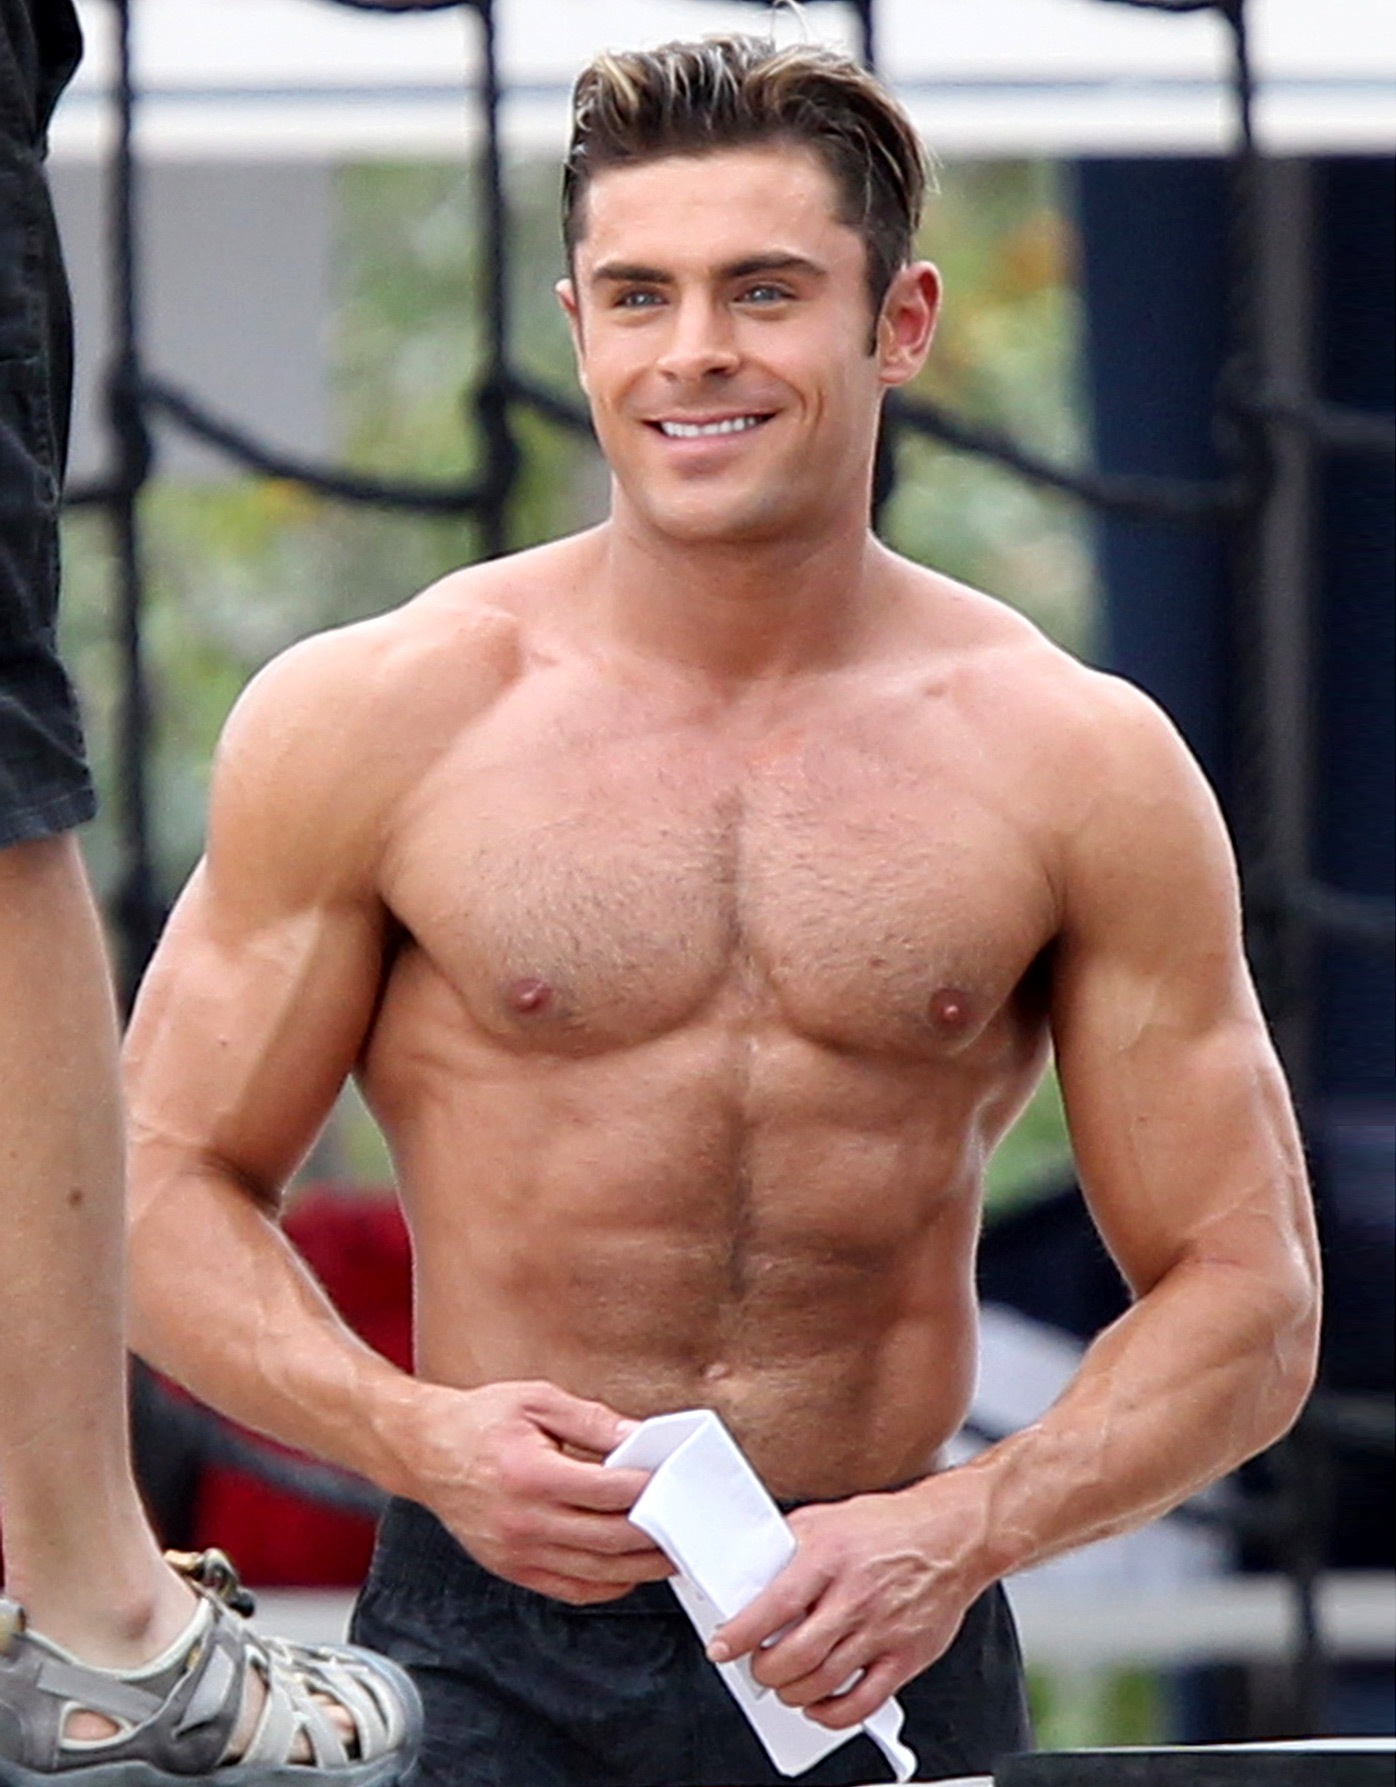 Zac Efron shirtless on the monkey bars filming Baywatch in Miami Beach